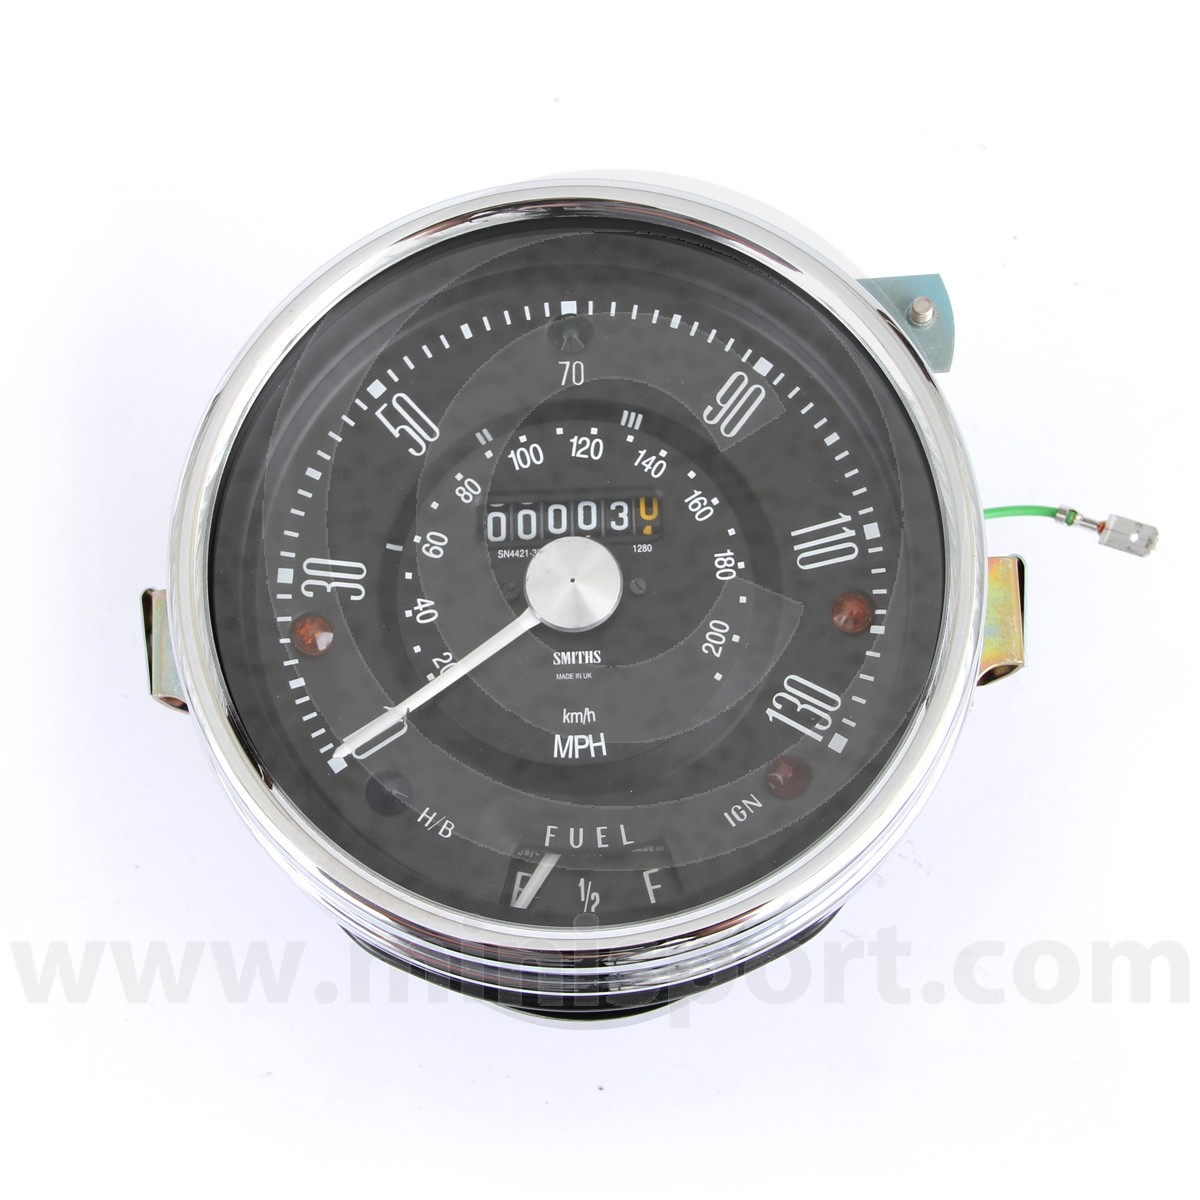 Sn4421 32b Smiths Speedo 130mph Classic Mini Parts Spares Cooper Tachometer Wiring Diagram More Views